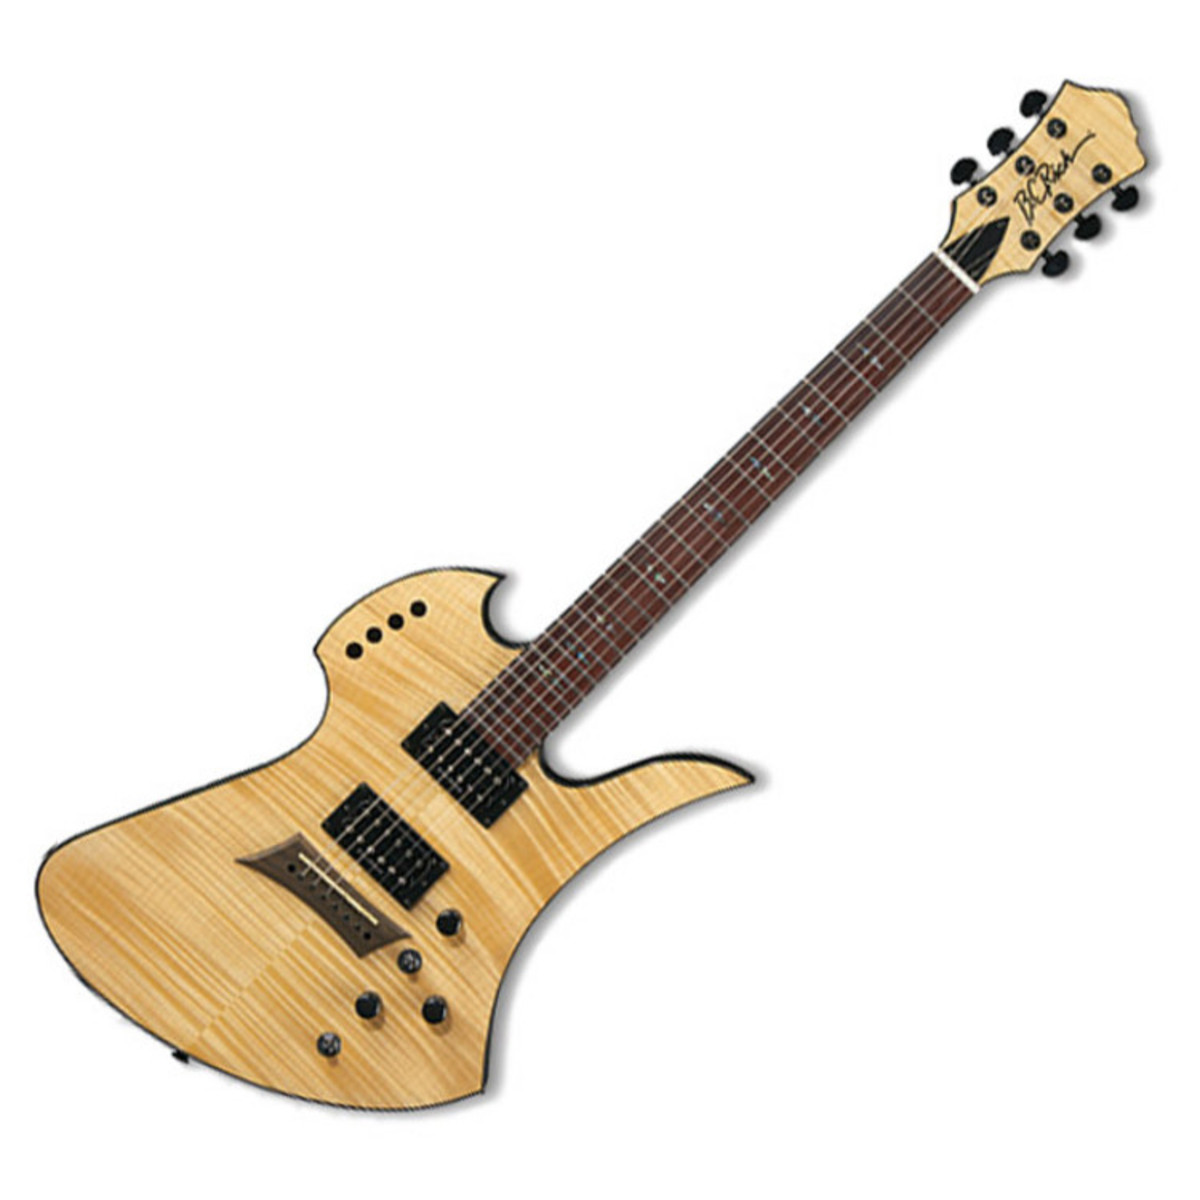 disc bc rich mockingbird polarity deluxe guitar natural at gear4music. Black Bedroom Furniture Sets. Home Design Ideas